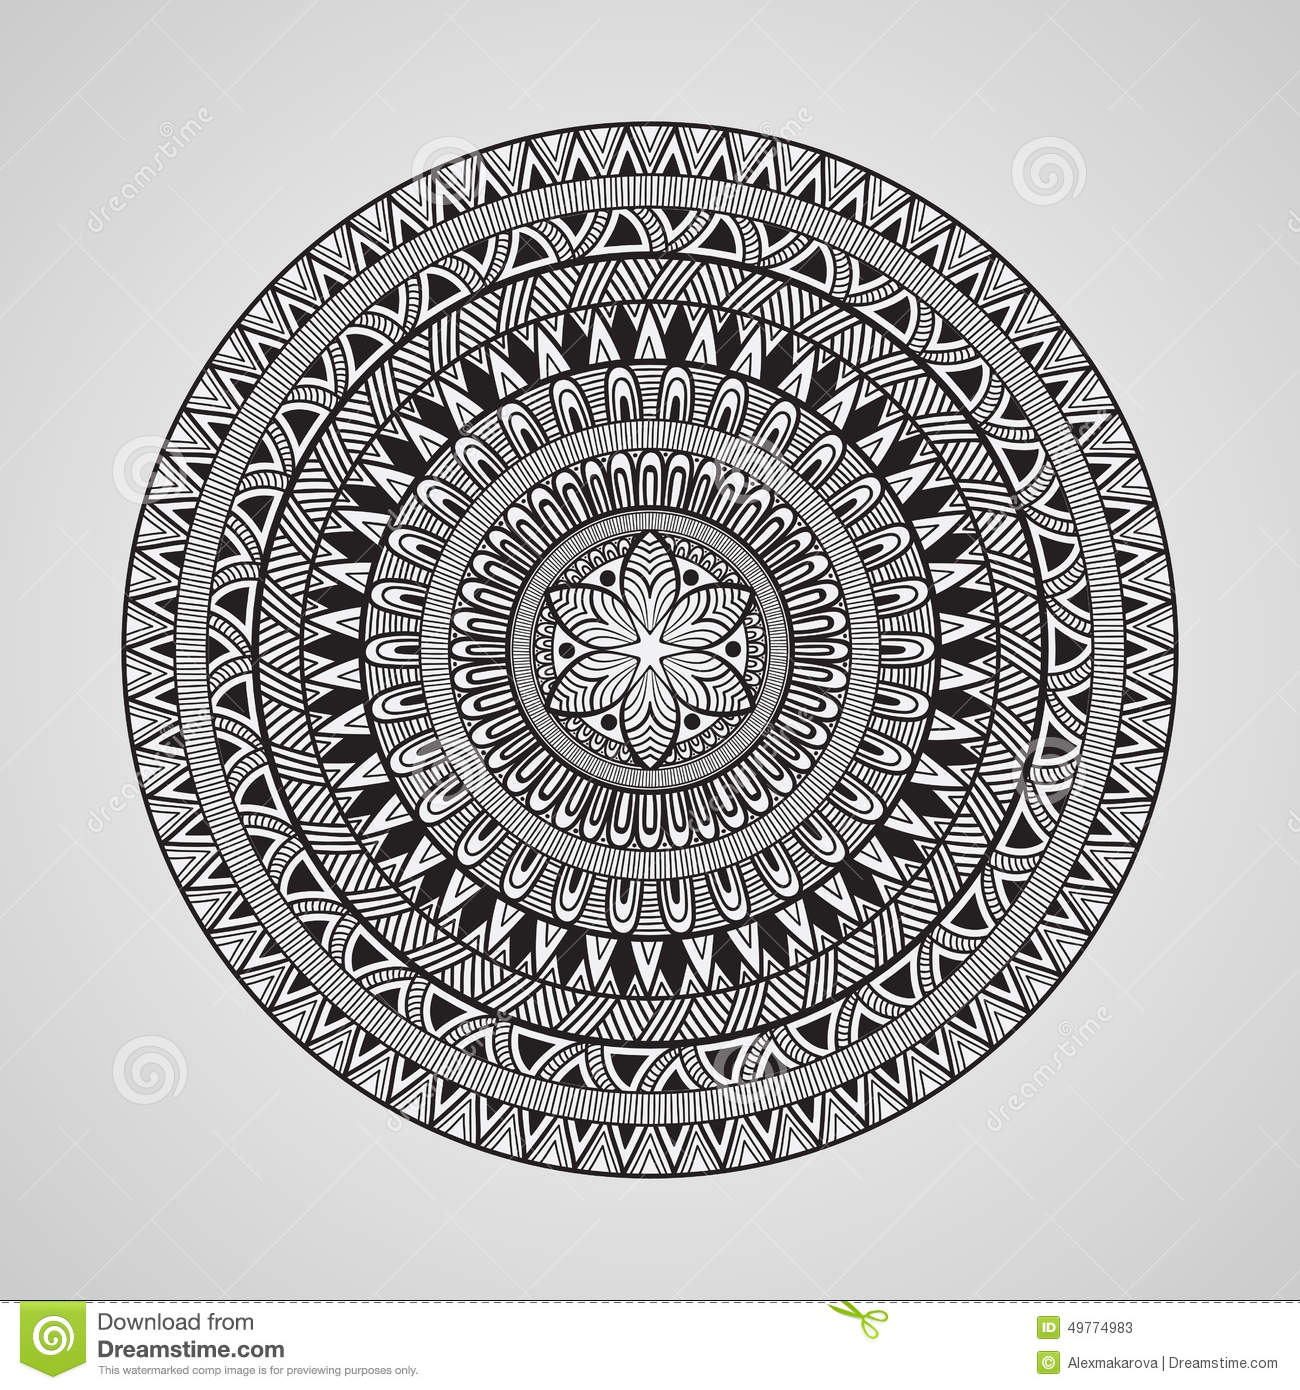 Free ornamental mandala vector download free vector art stock - Vector Hand Drawn Doodle Mandala Stock Vector Image